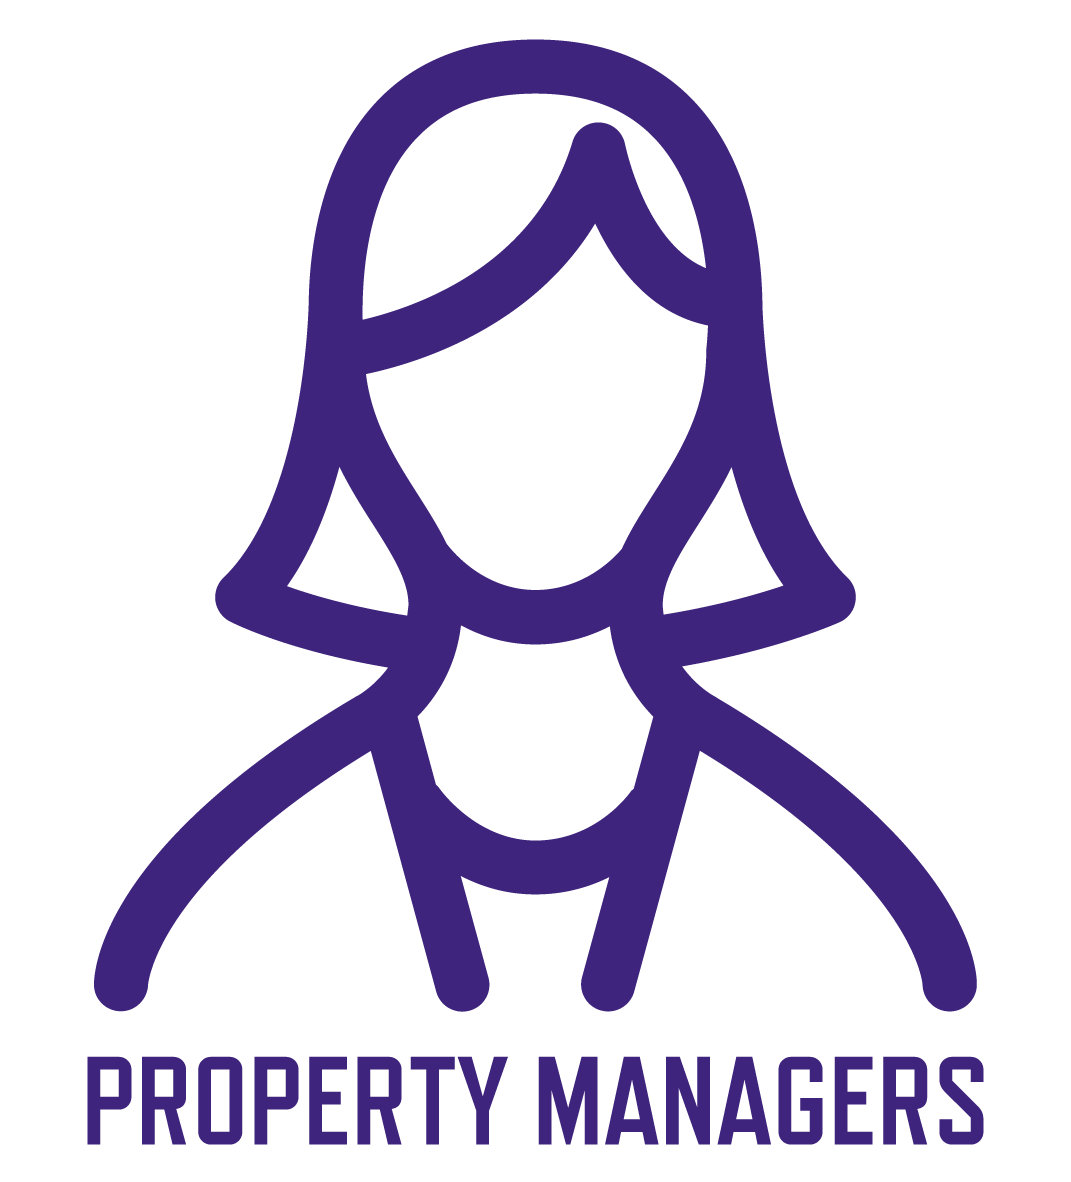 Property-Manager-01.png